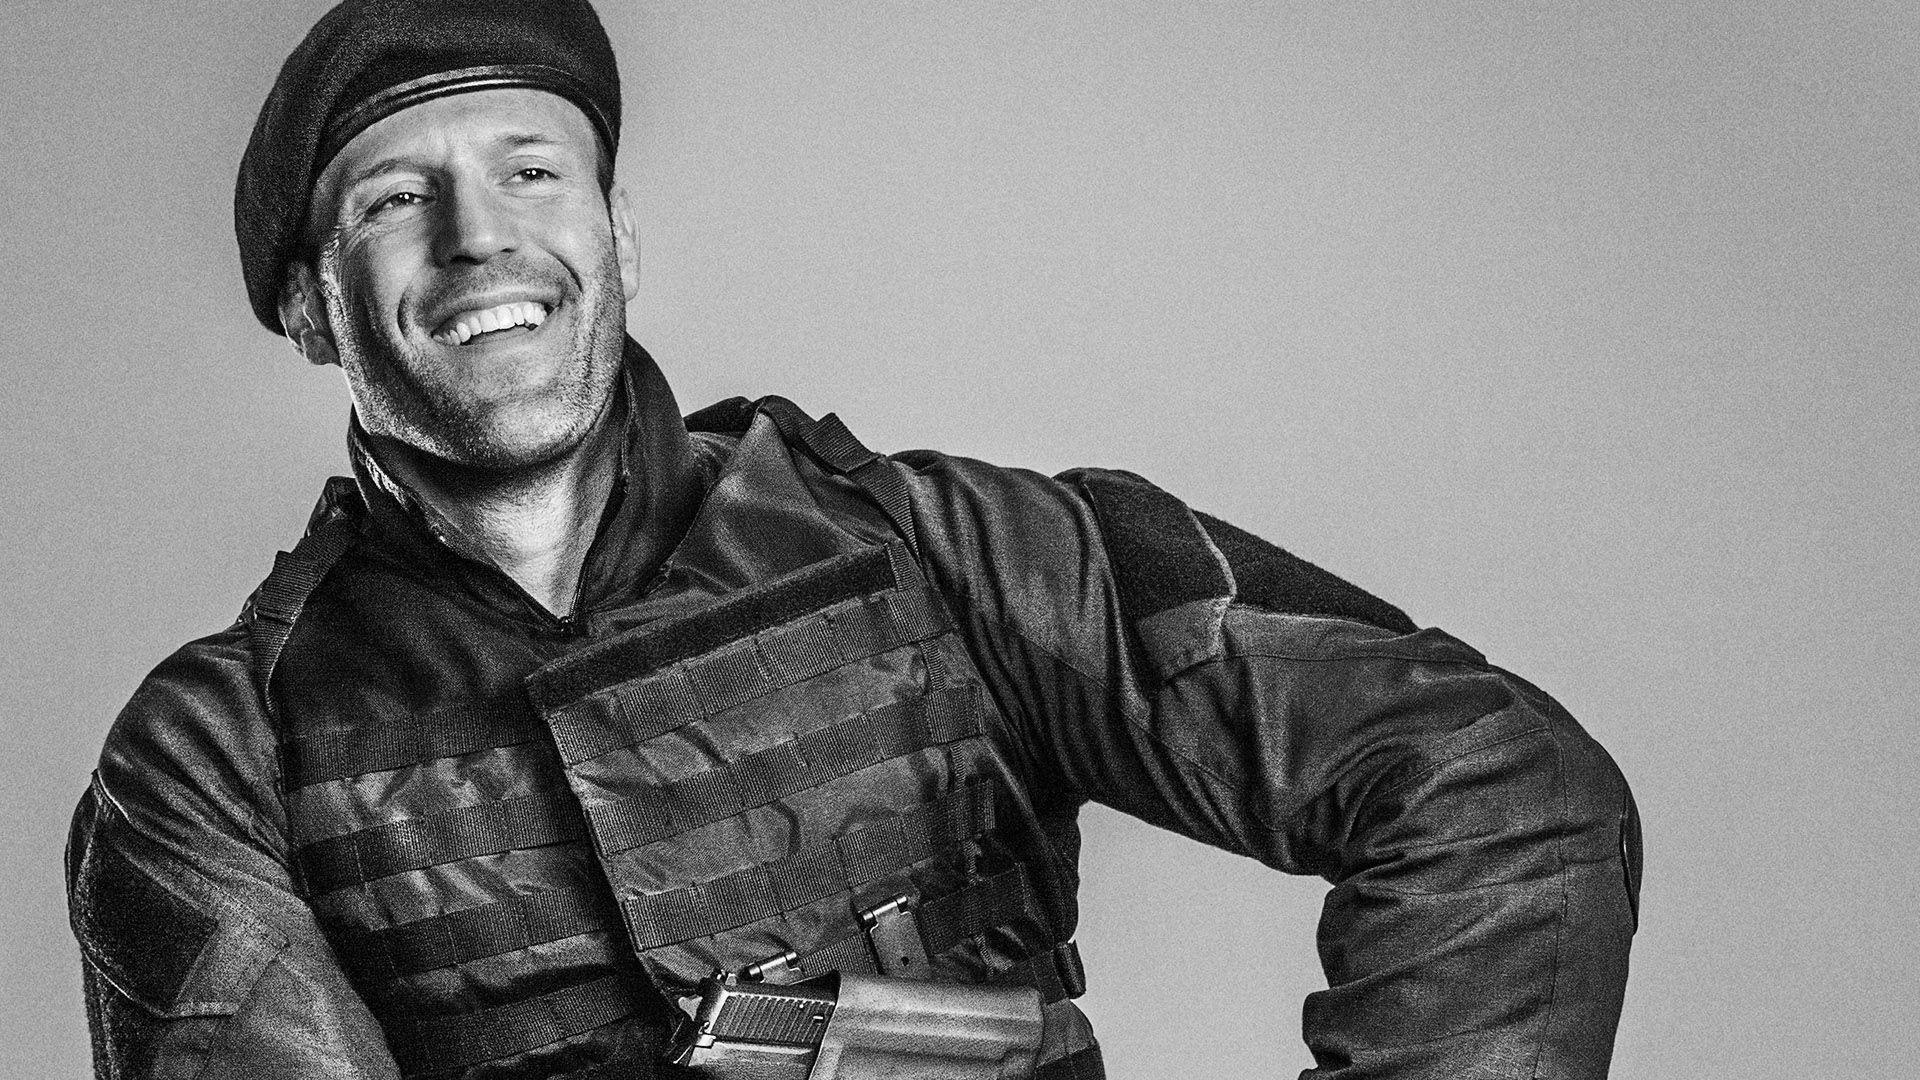 Jason Statham In The Expendables 3 Movie Wallpaper Wide or HD ...